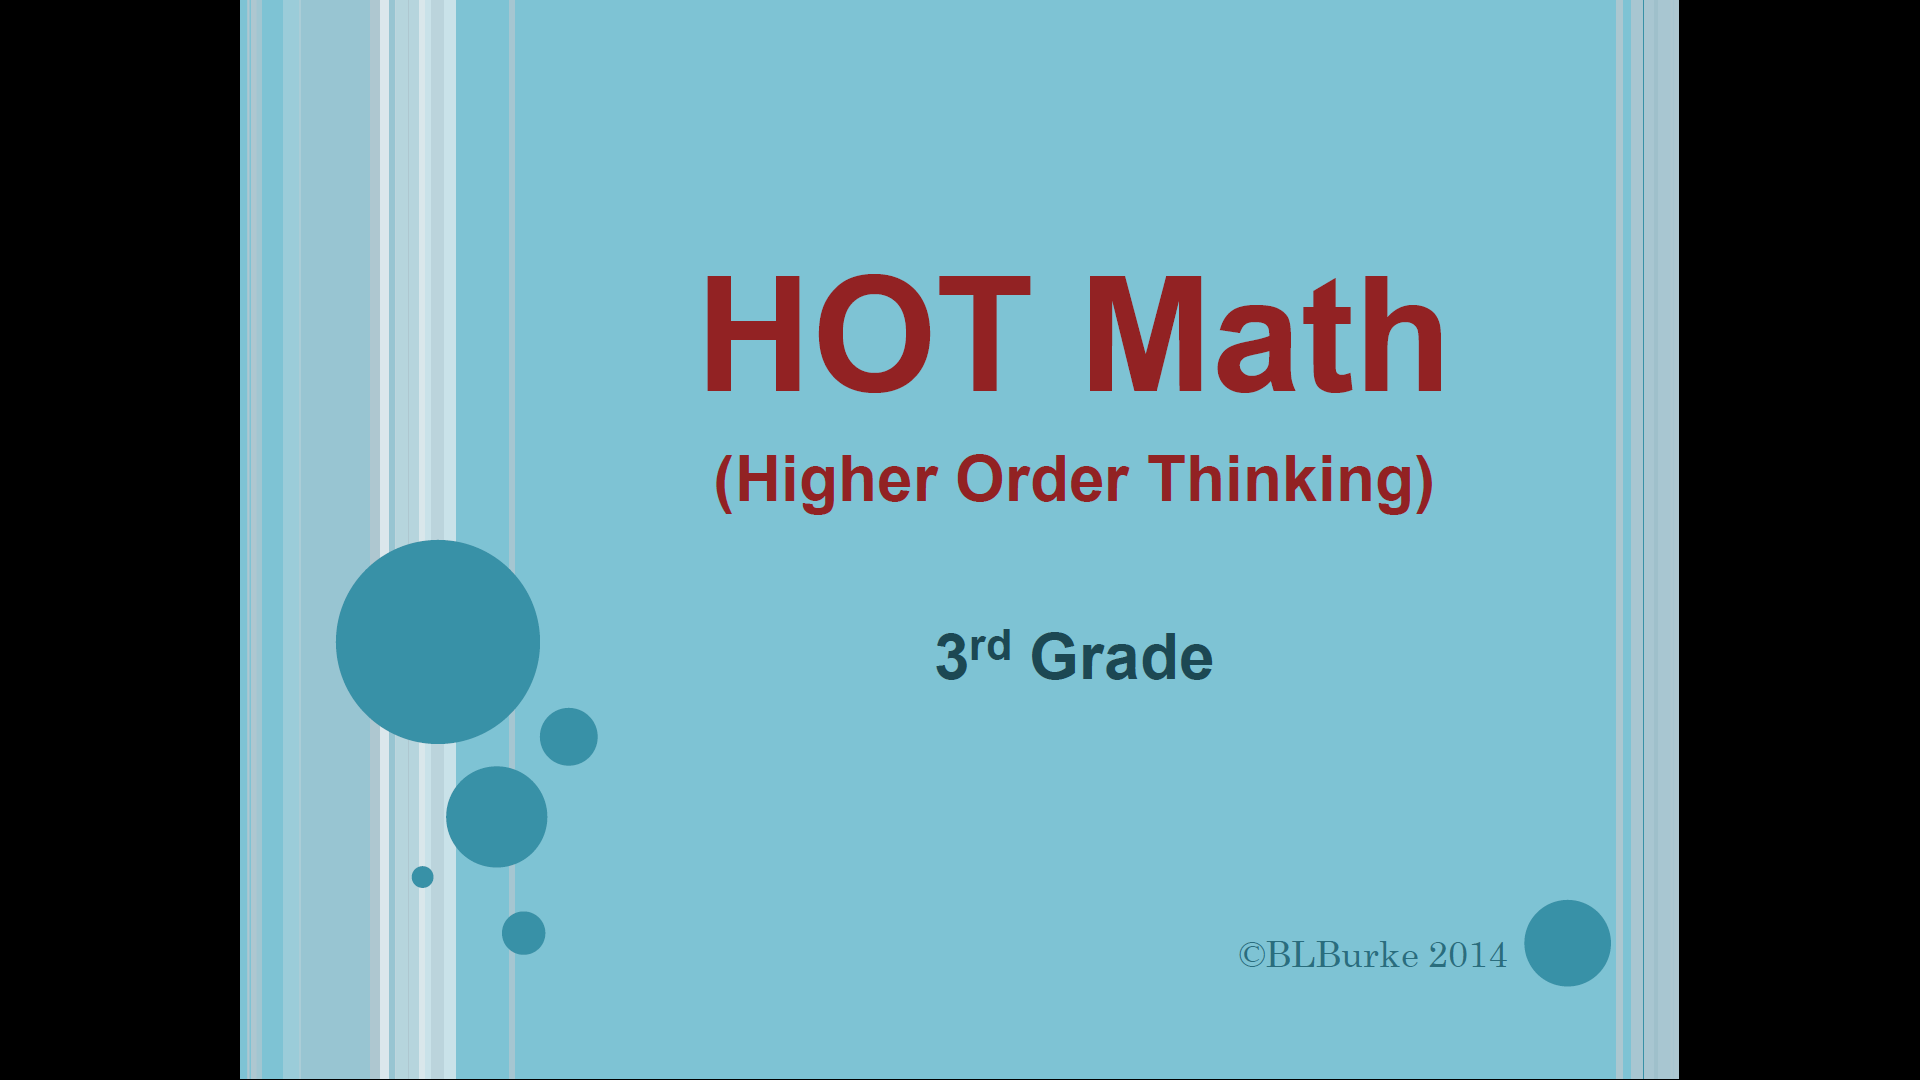 Higher Order Thinking Daily Math Warm Up 3rd Grade From